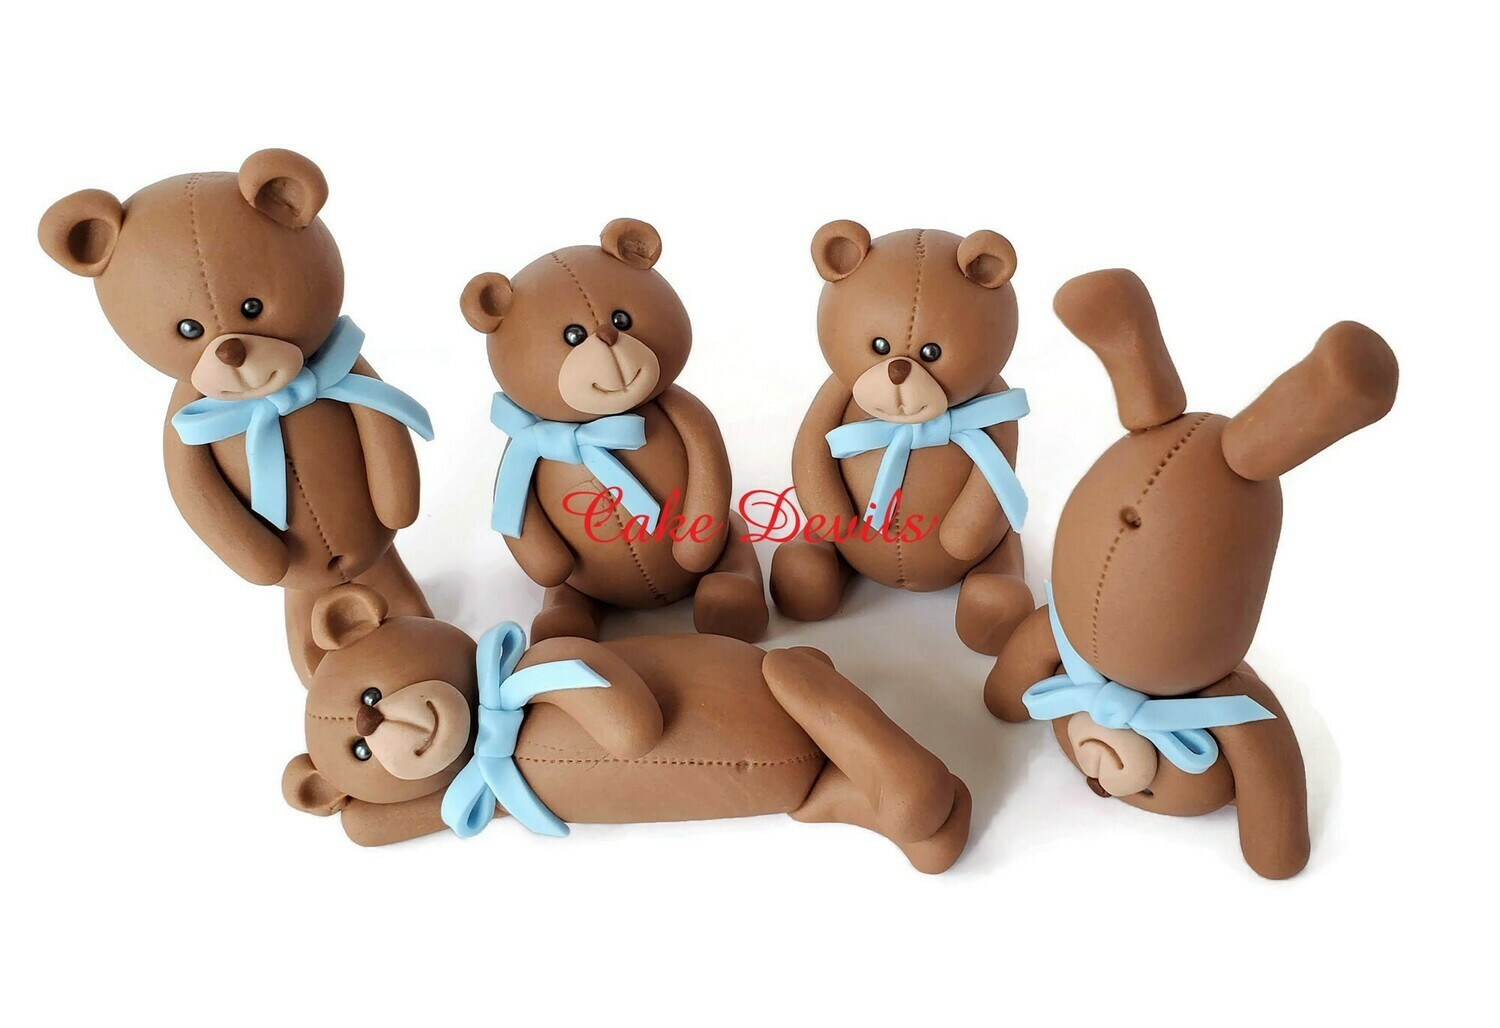 Teddy Bear Cake Toppers, Bears Cake Decorations for Baby Shower, Birthday and more!